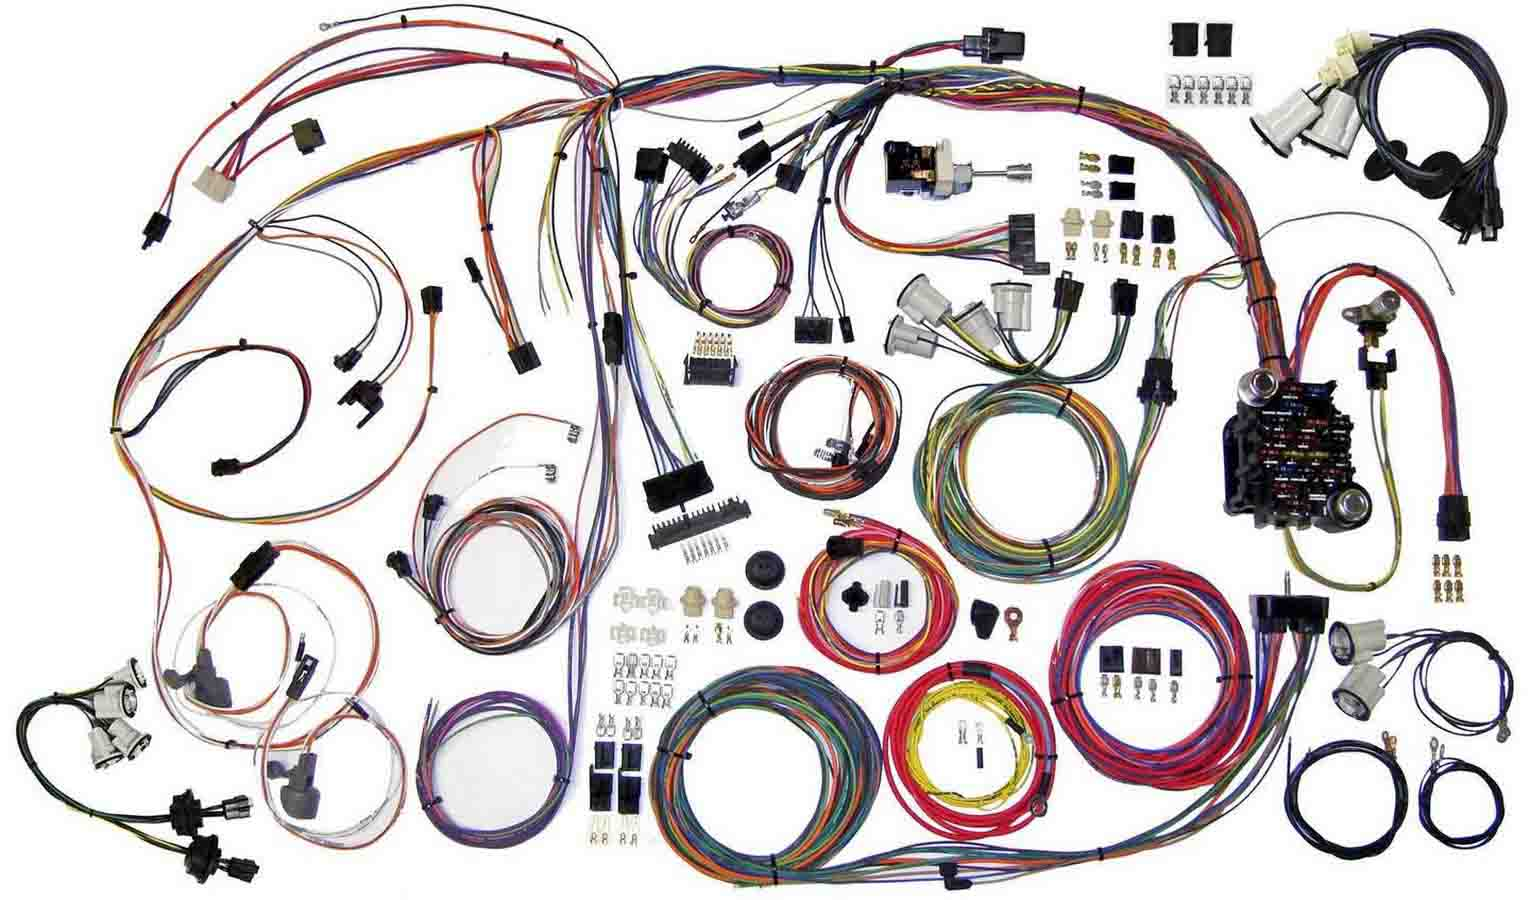 hight resolution of american autowire wiring system monte carlo 1970 72 kit p n 510336 walmart com